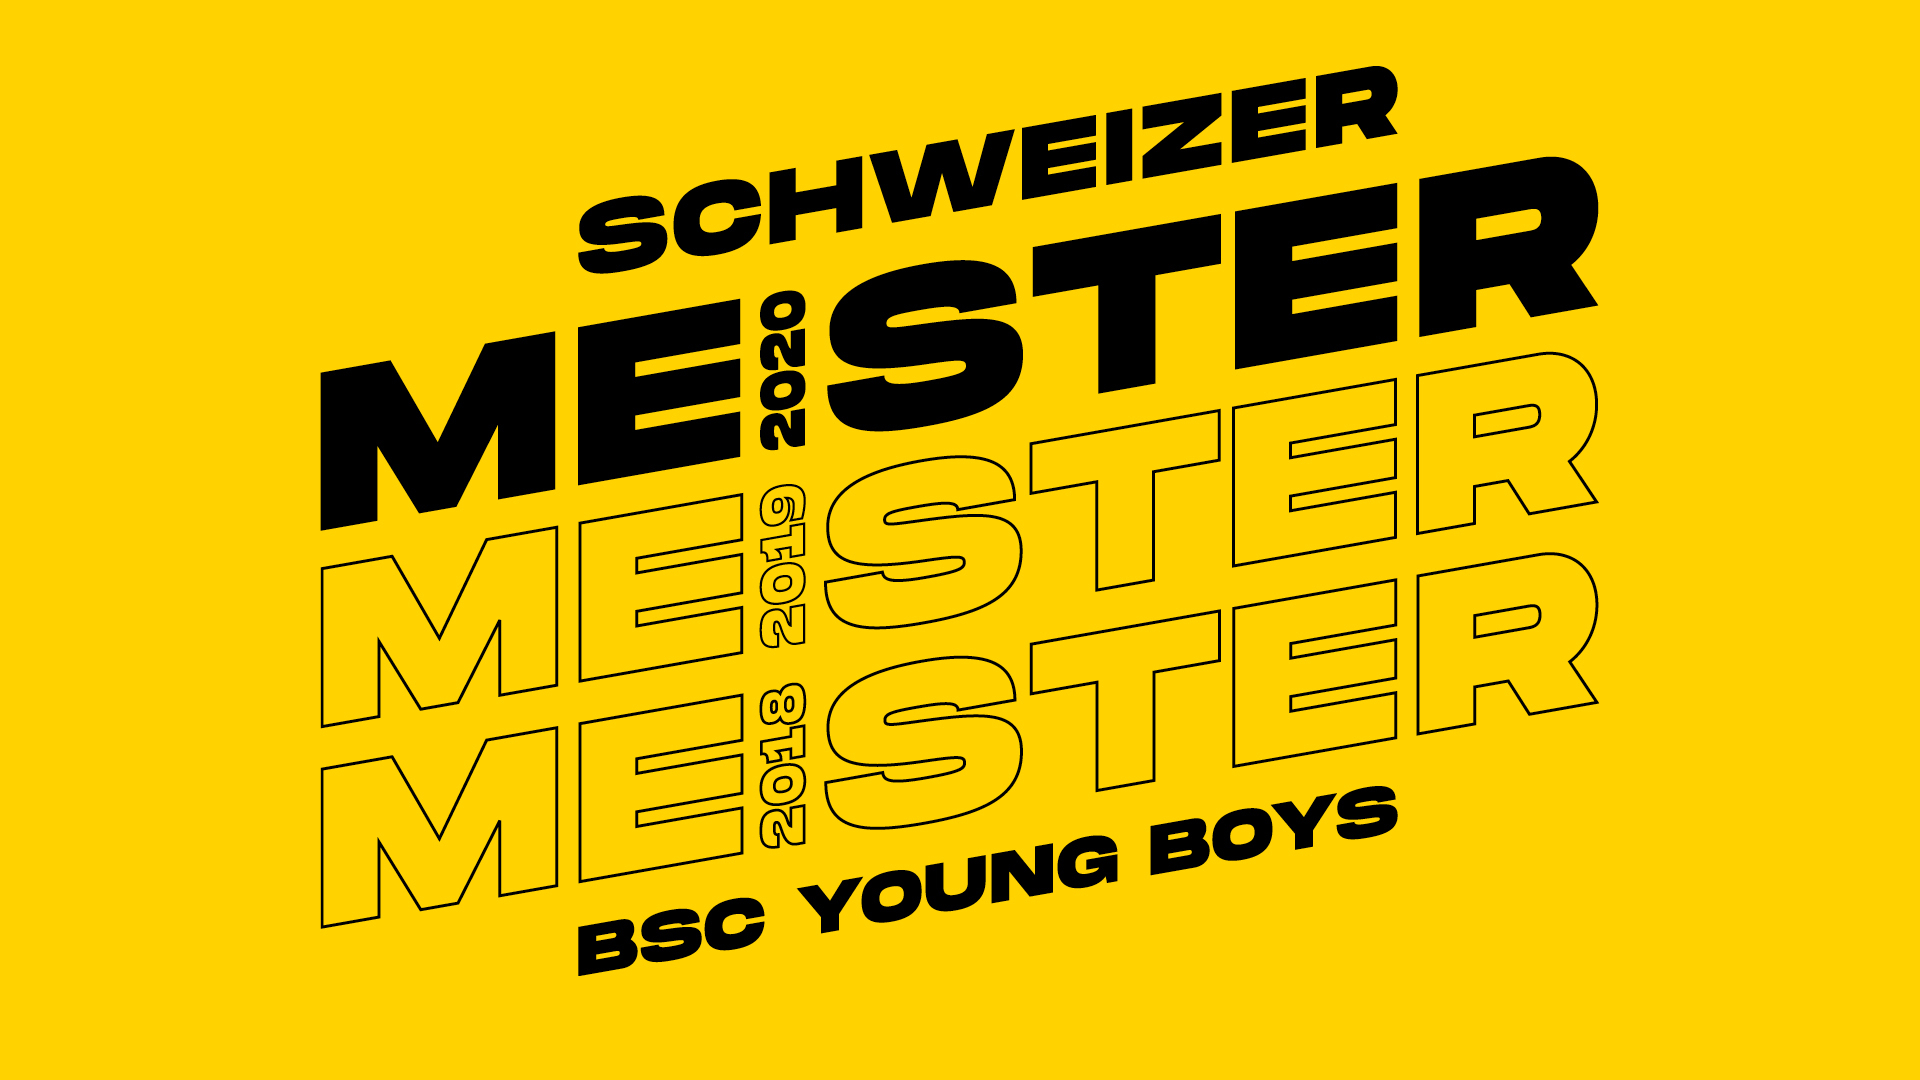 Diverse - Meister_2020_2